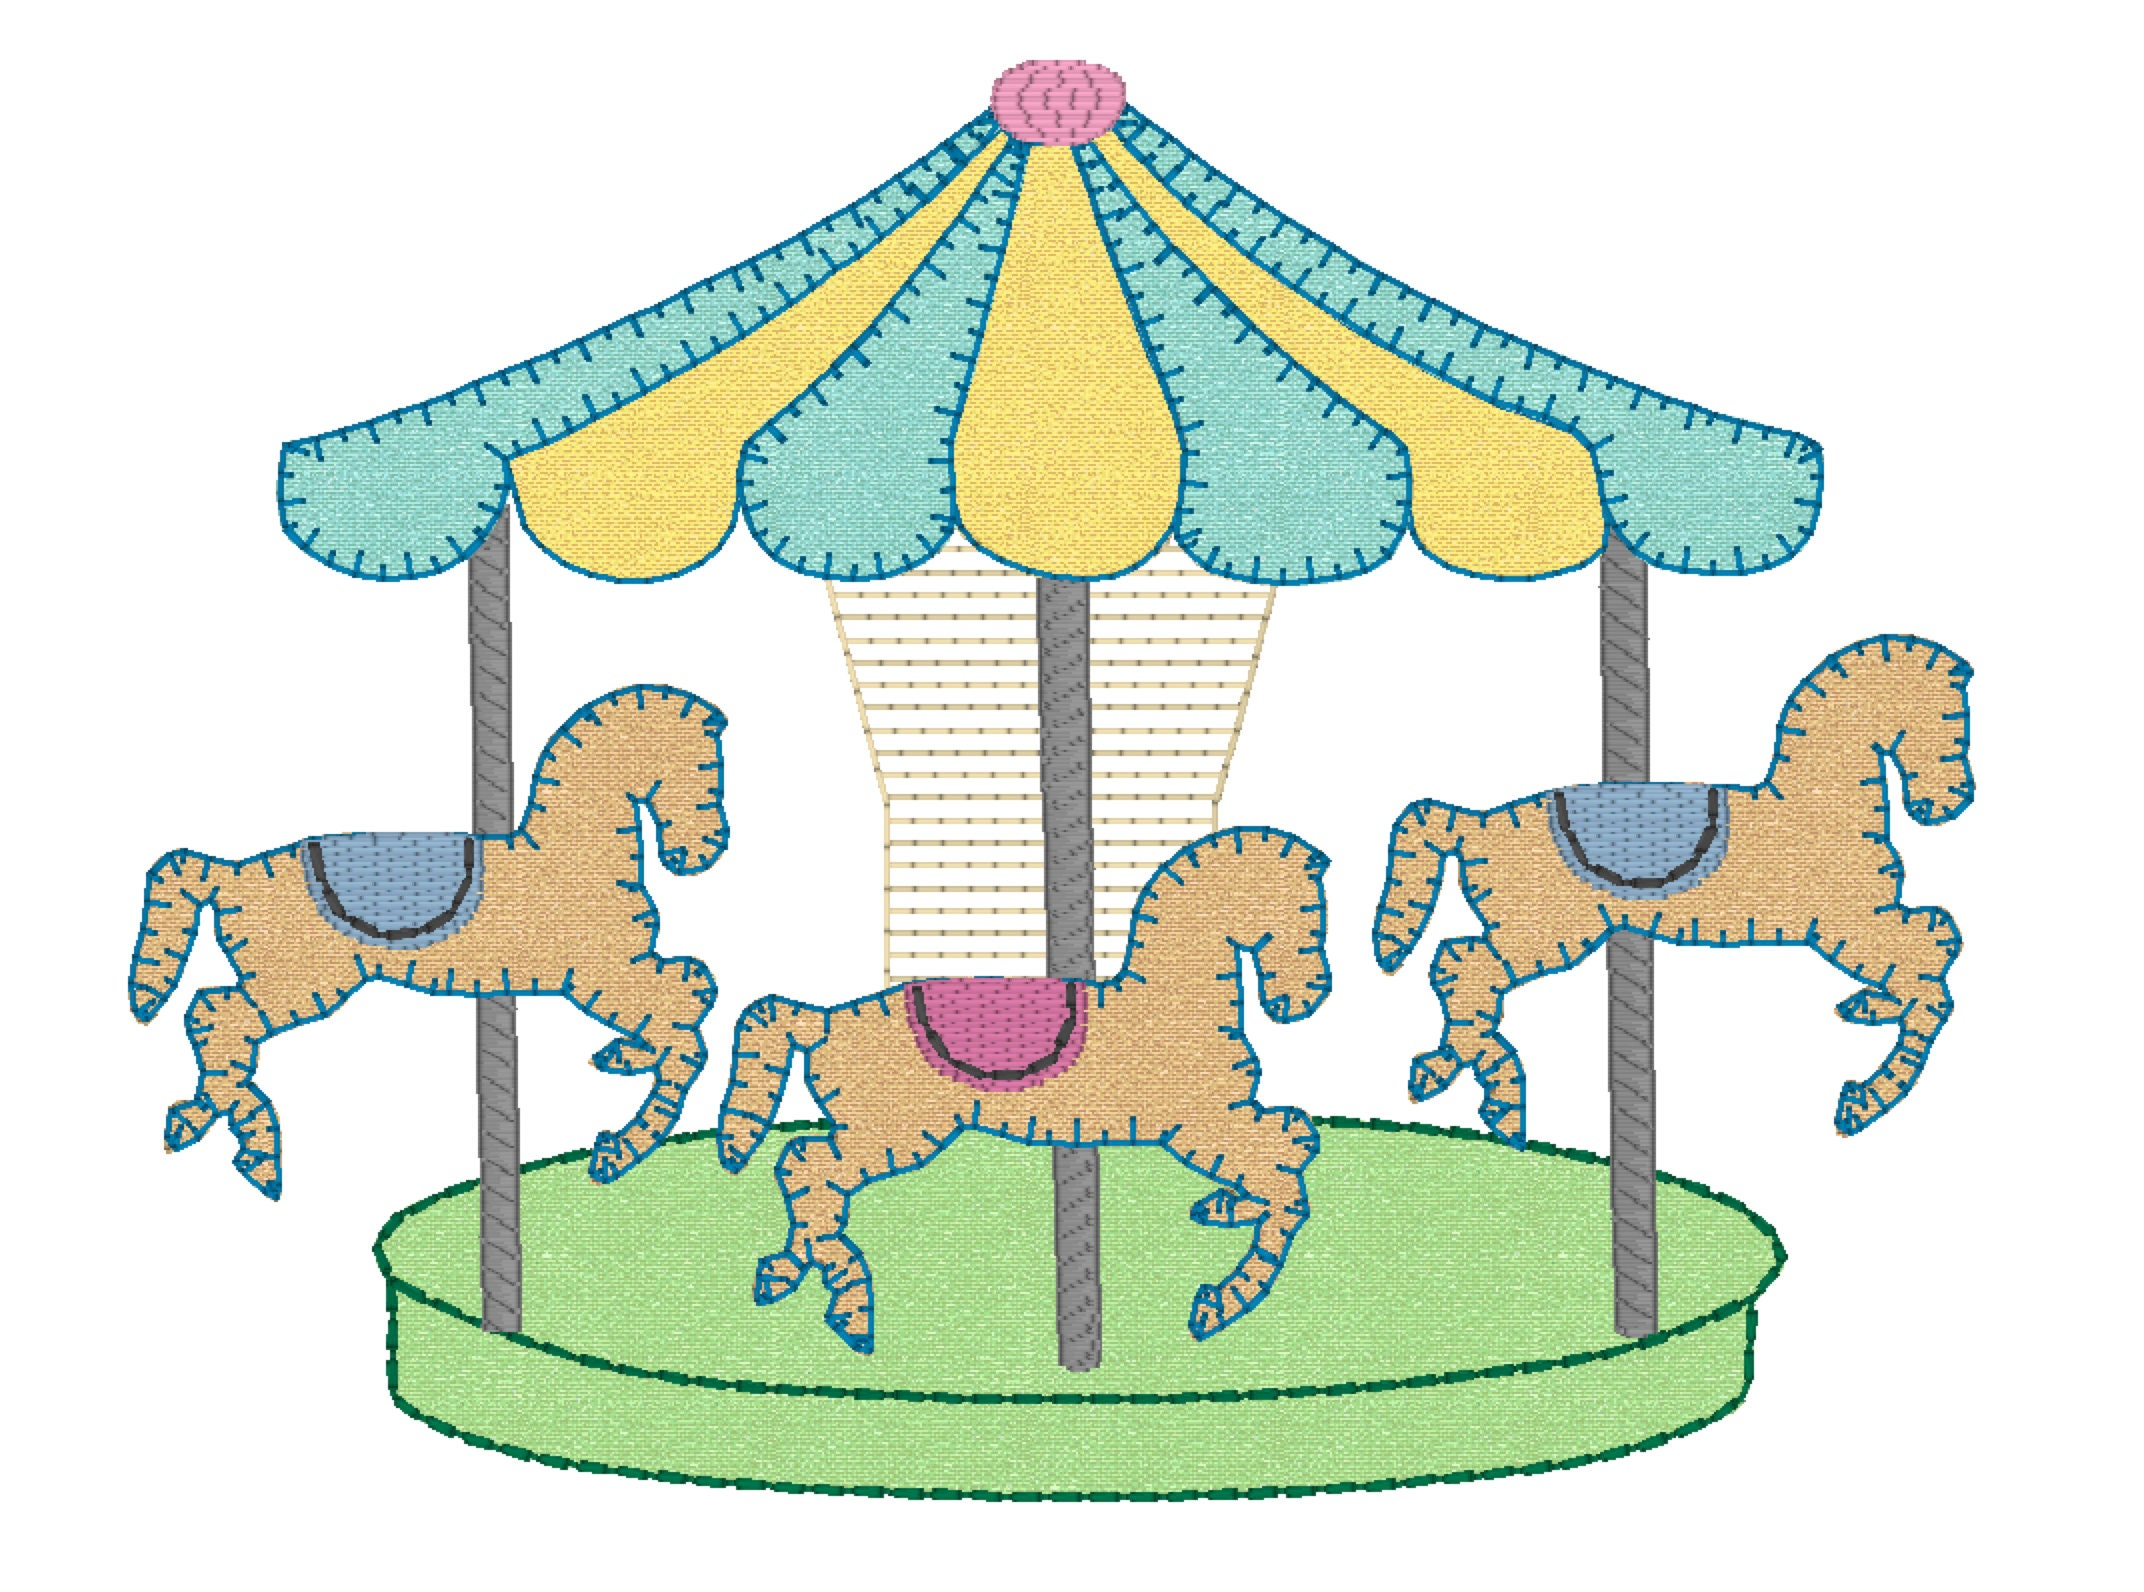 carousel embroidery design merry go round embroidery file vintage stitch carnival fair. Black Bedroom Furniture Sets. Home Design Ideas